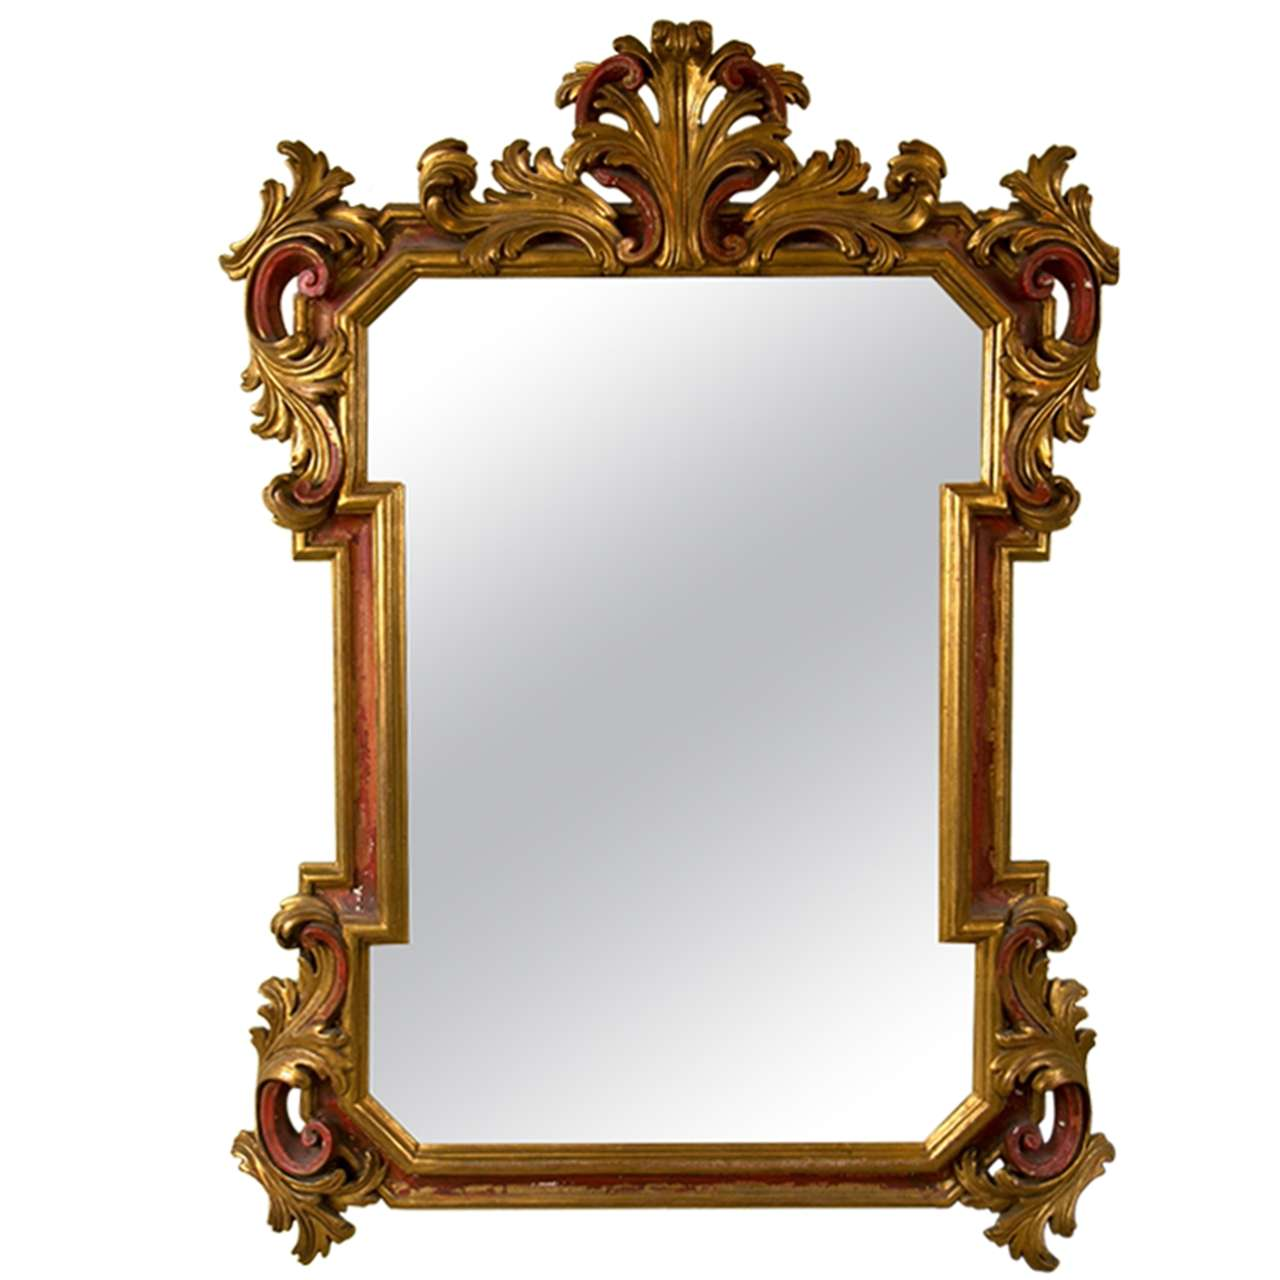 gilt gold and paint decorated hollywood regency style mirror 1 - Decorated Mirror